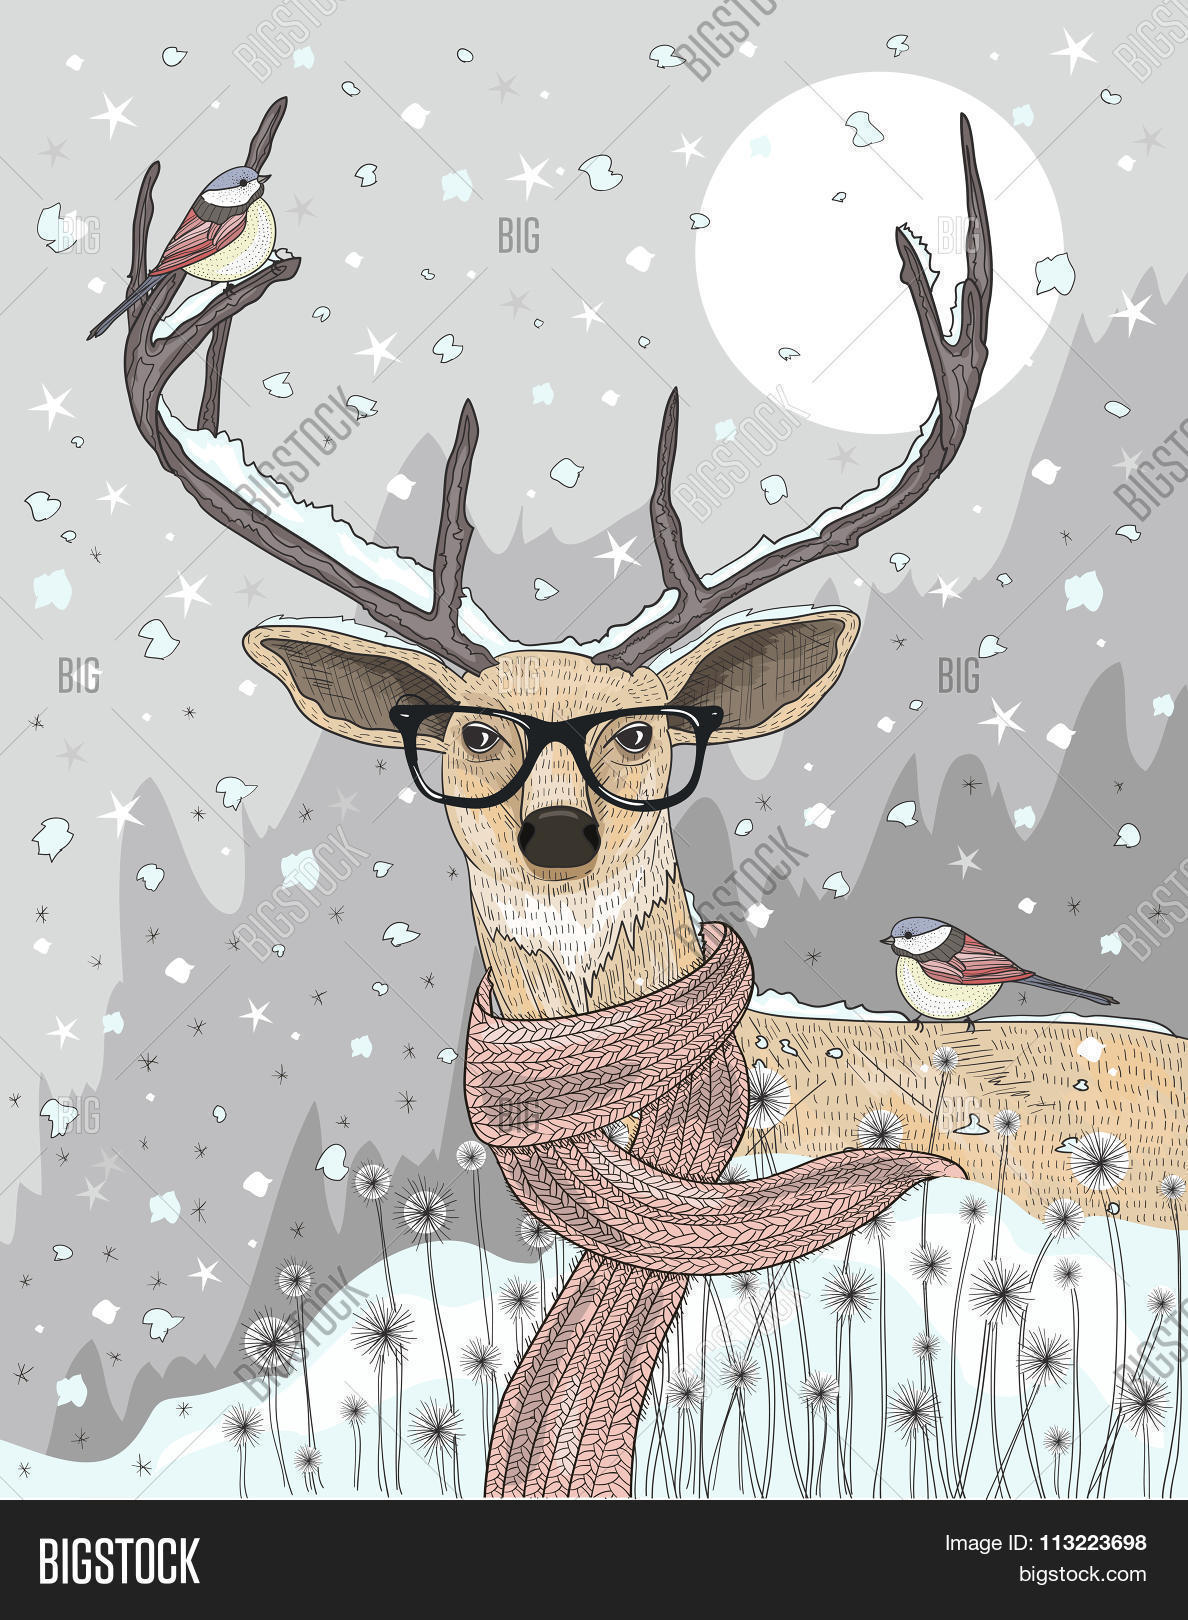 968ede9acf9 Cute Hipster Deer With Scarf And Glasses. Winter Night Christmas  Illustration.